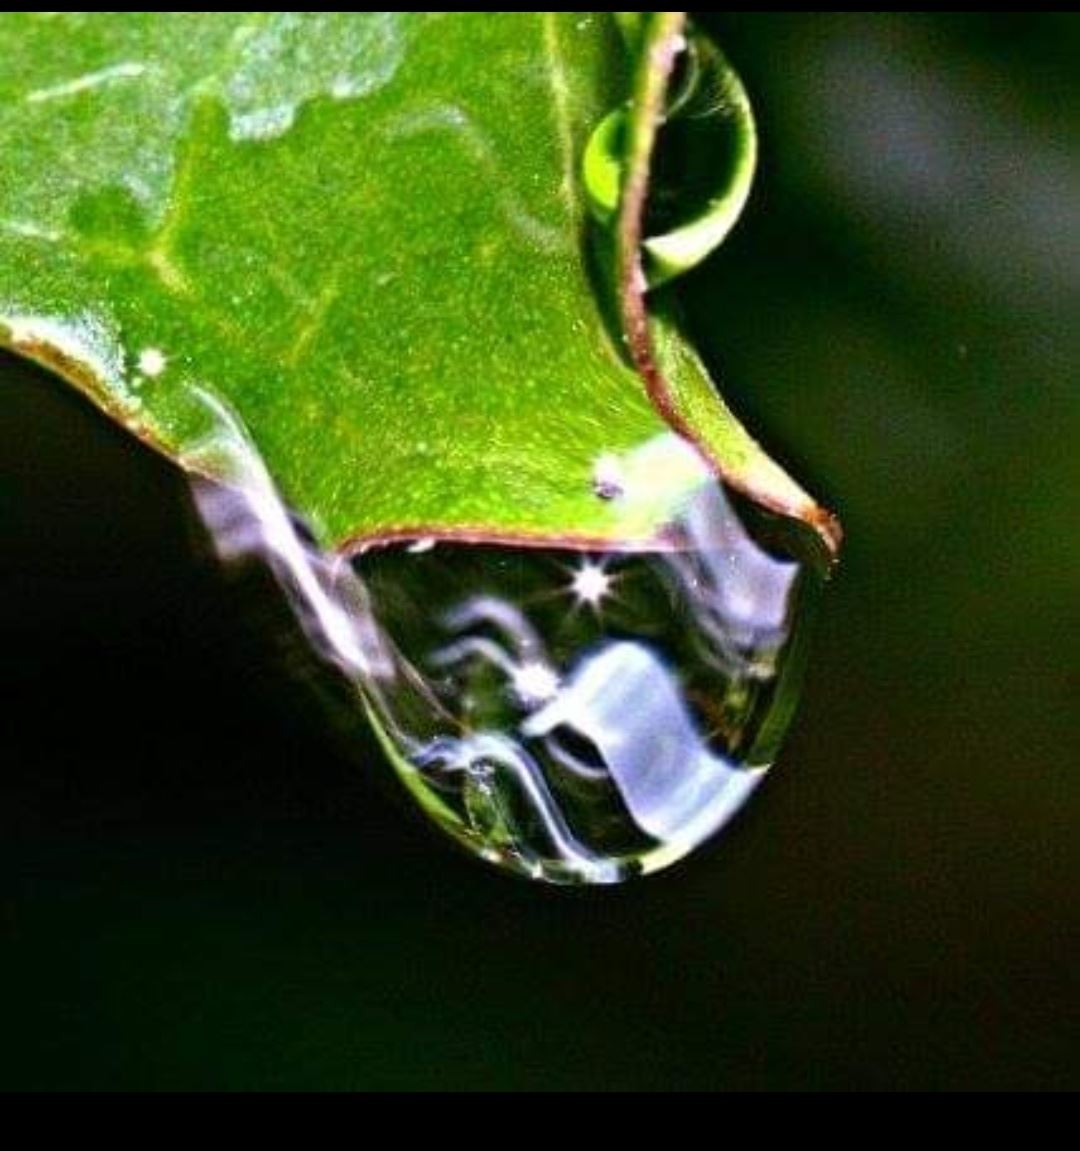 A close up of a drop of water on the tip of a leaf.